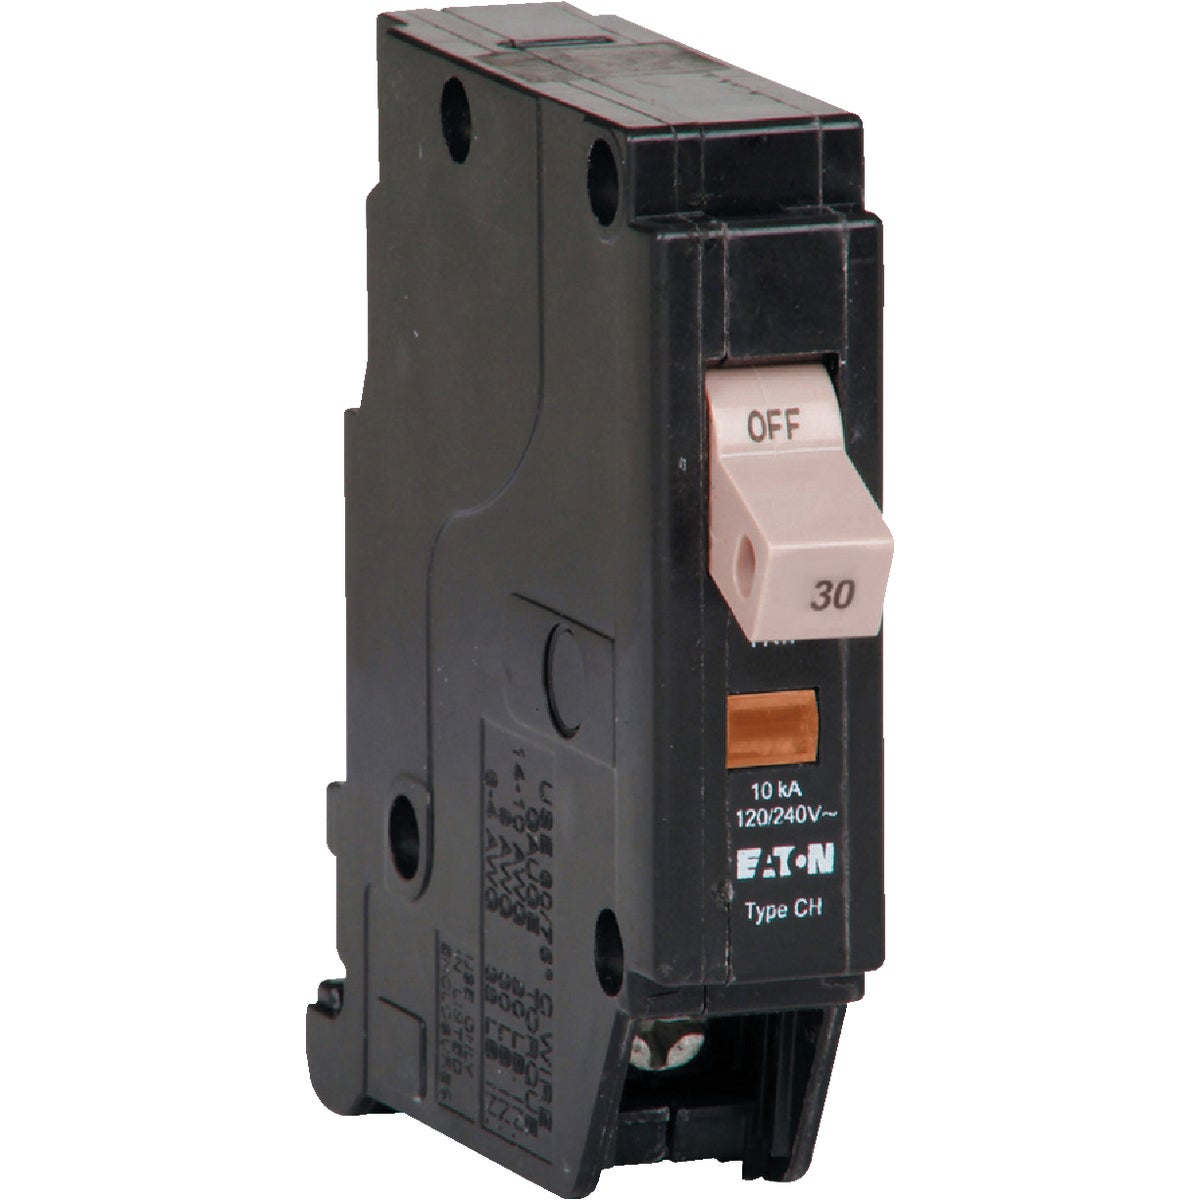 30A SP CIRCUIT BREAKER - CHF130 by Eaton Corporation